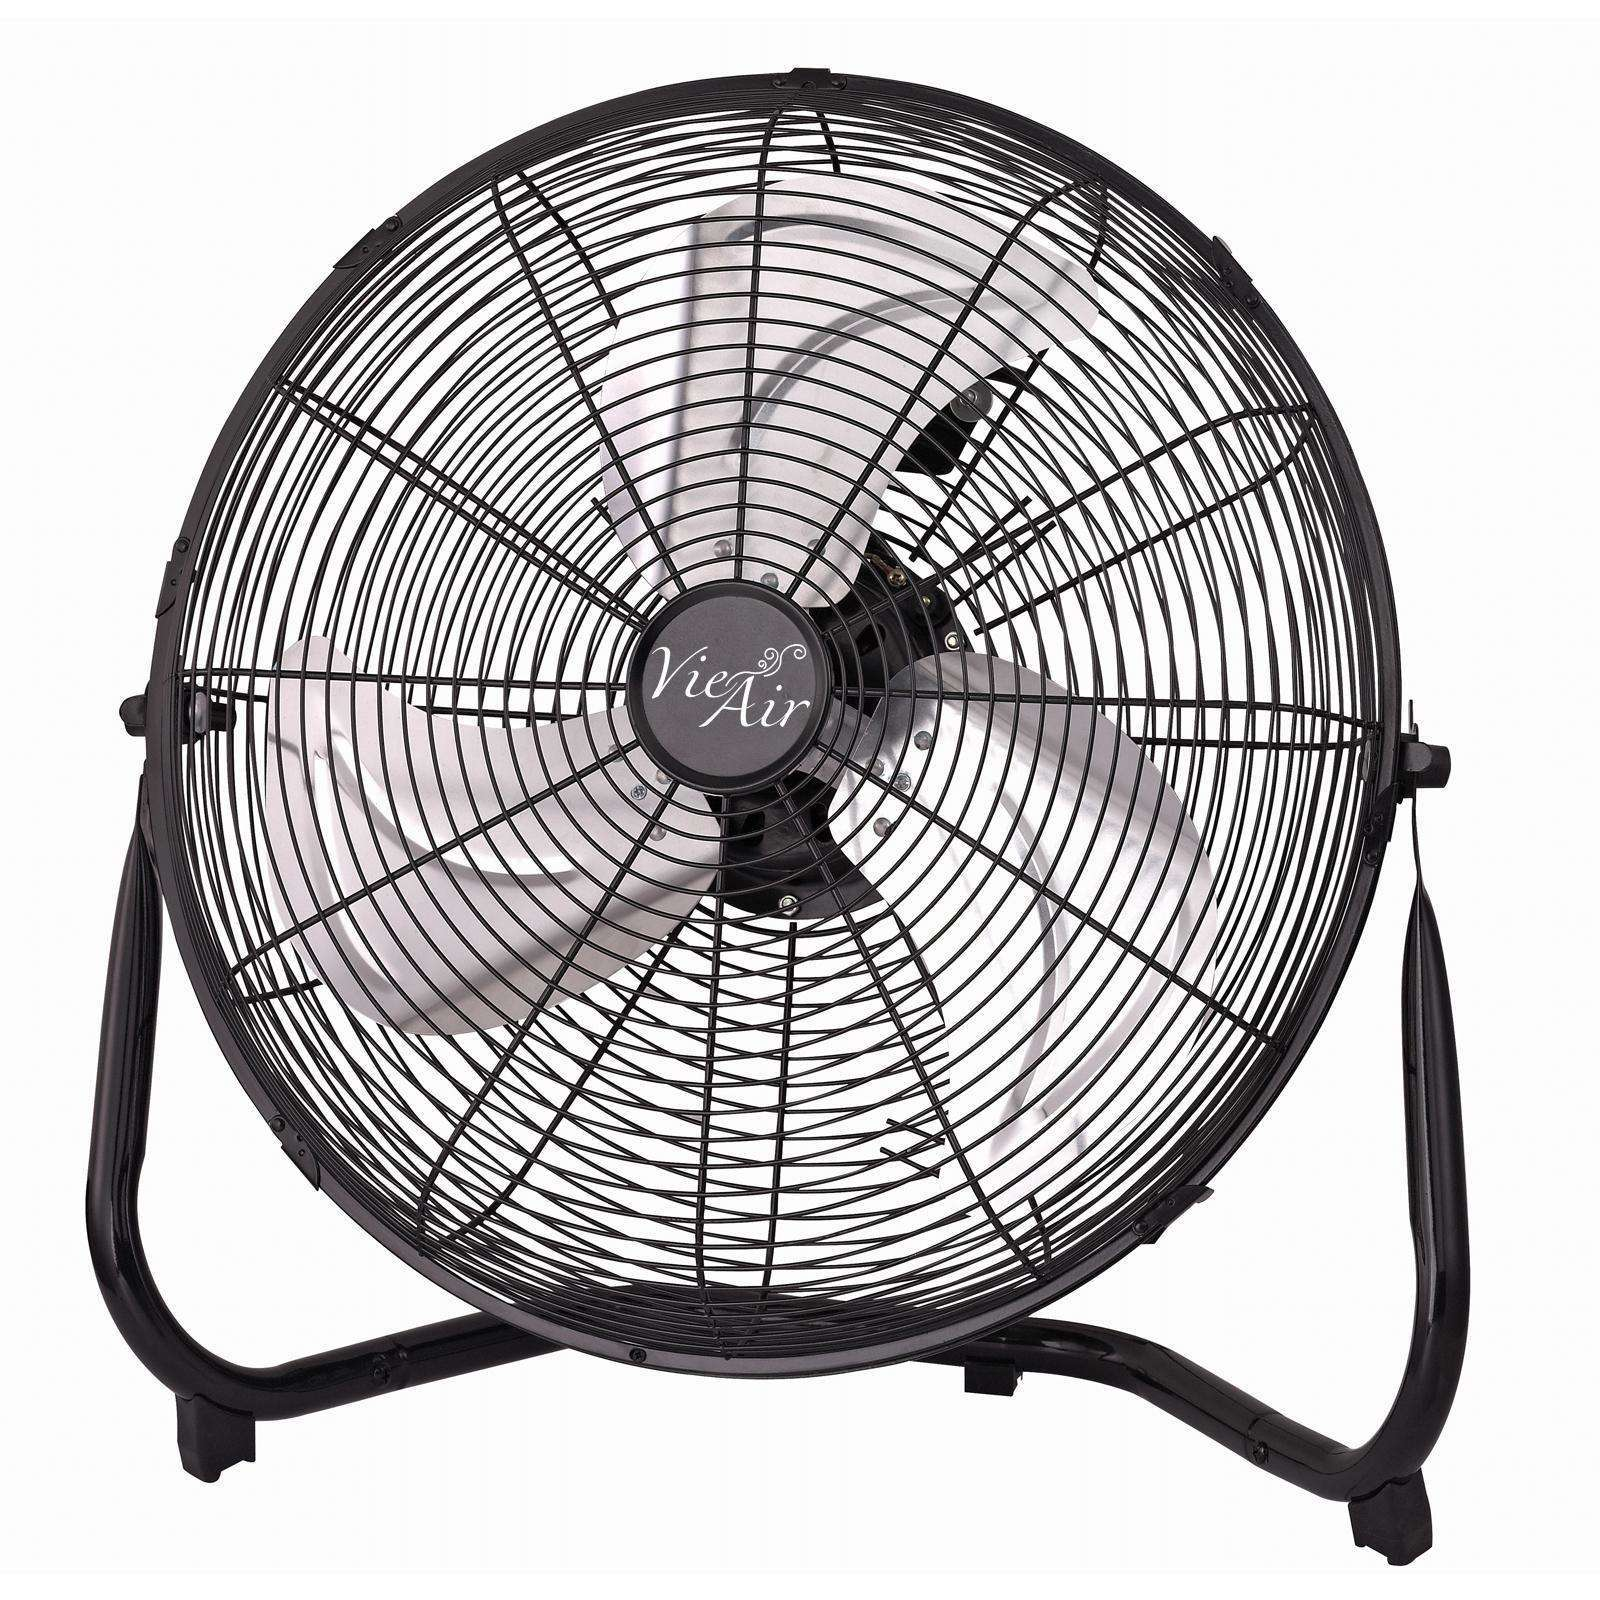 "Vie Air 14"" Industrial High Velocity Heavy Duty Metal Floor Fan with 3 Speed Settings - Reconditioned"